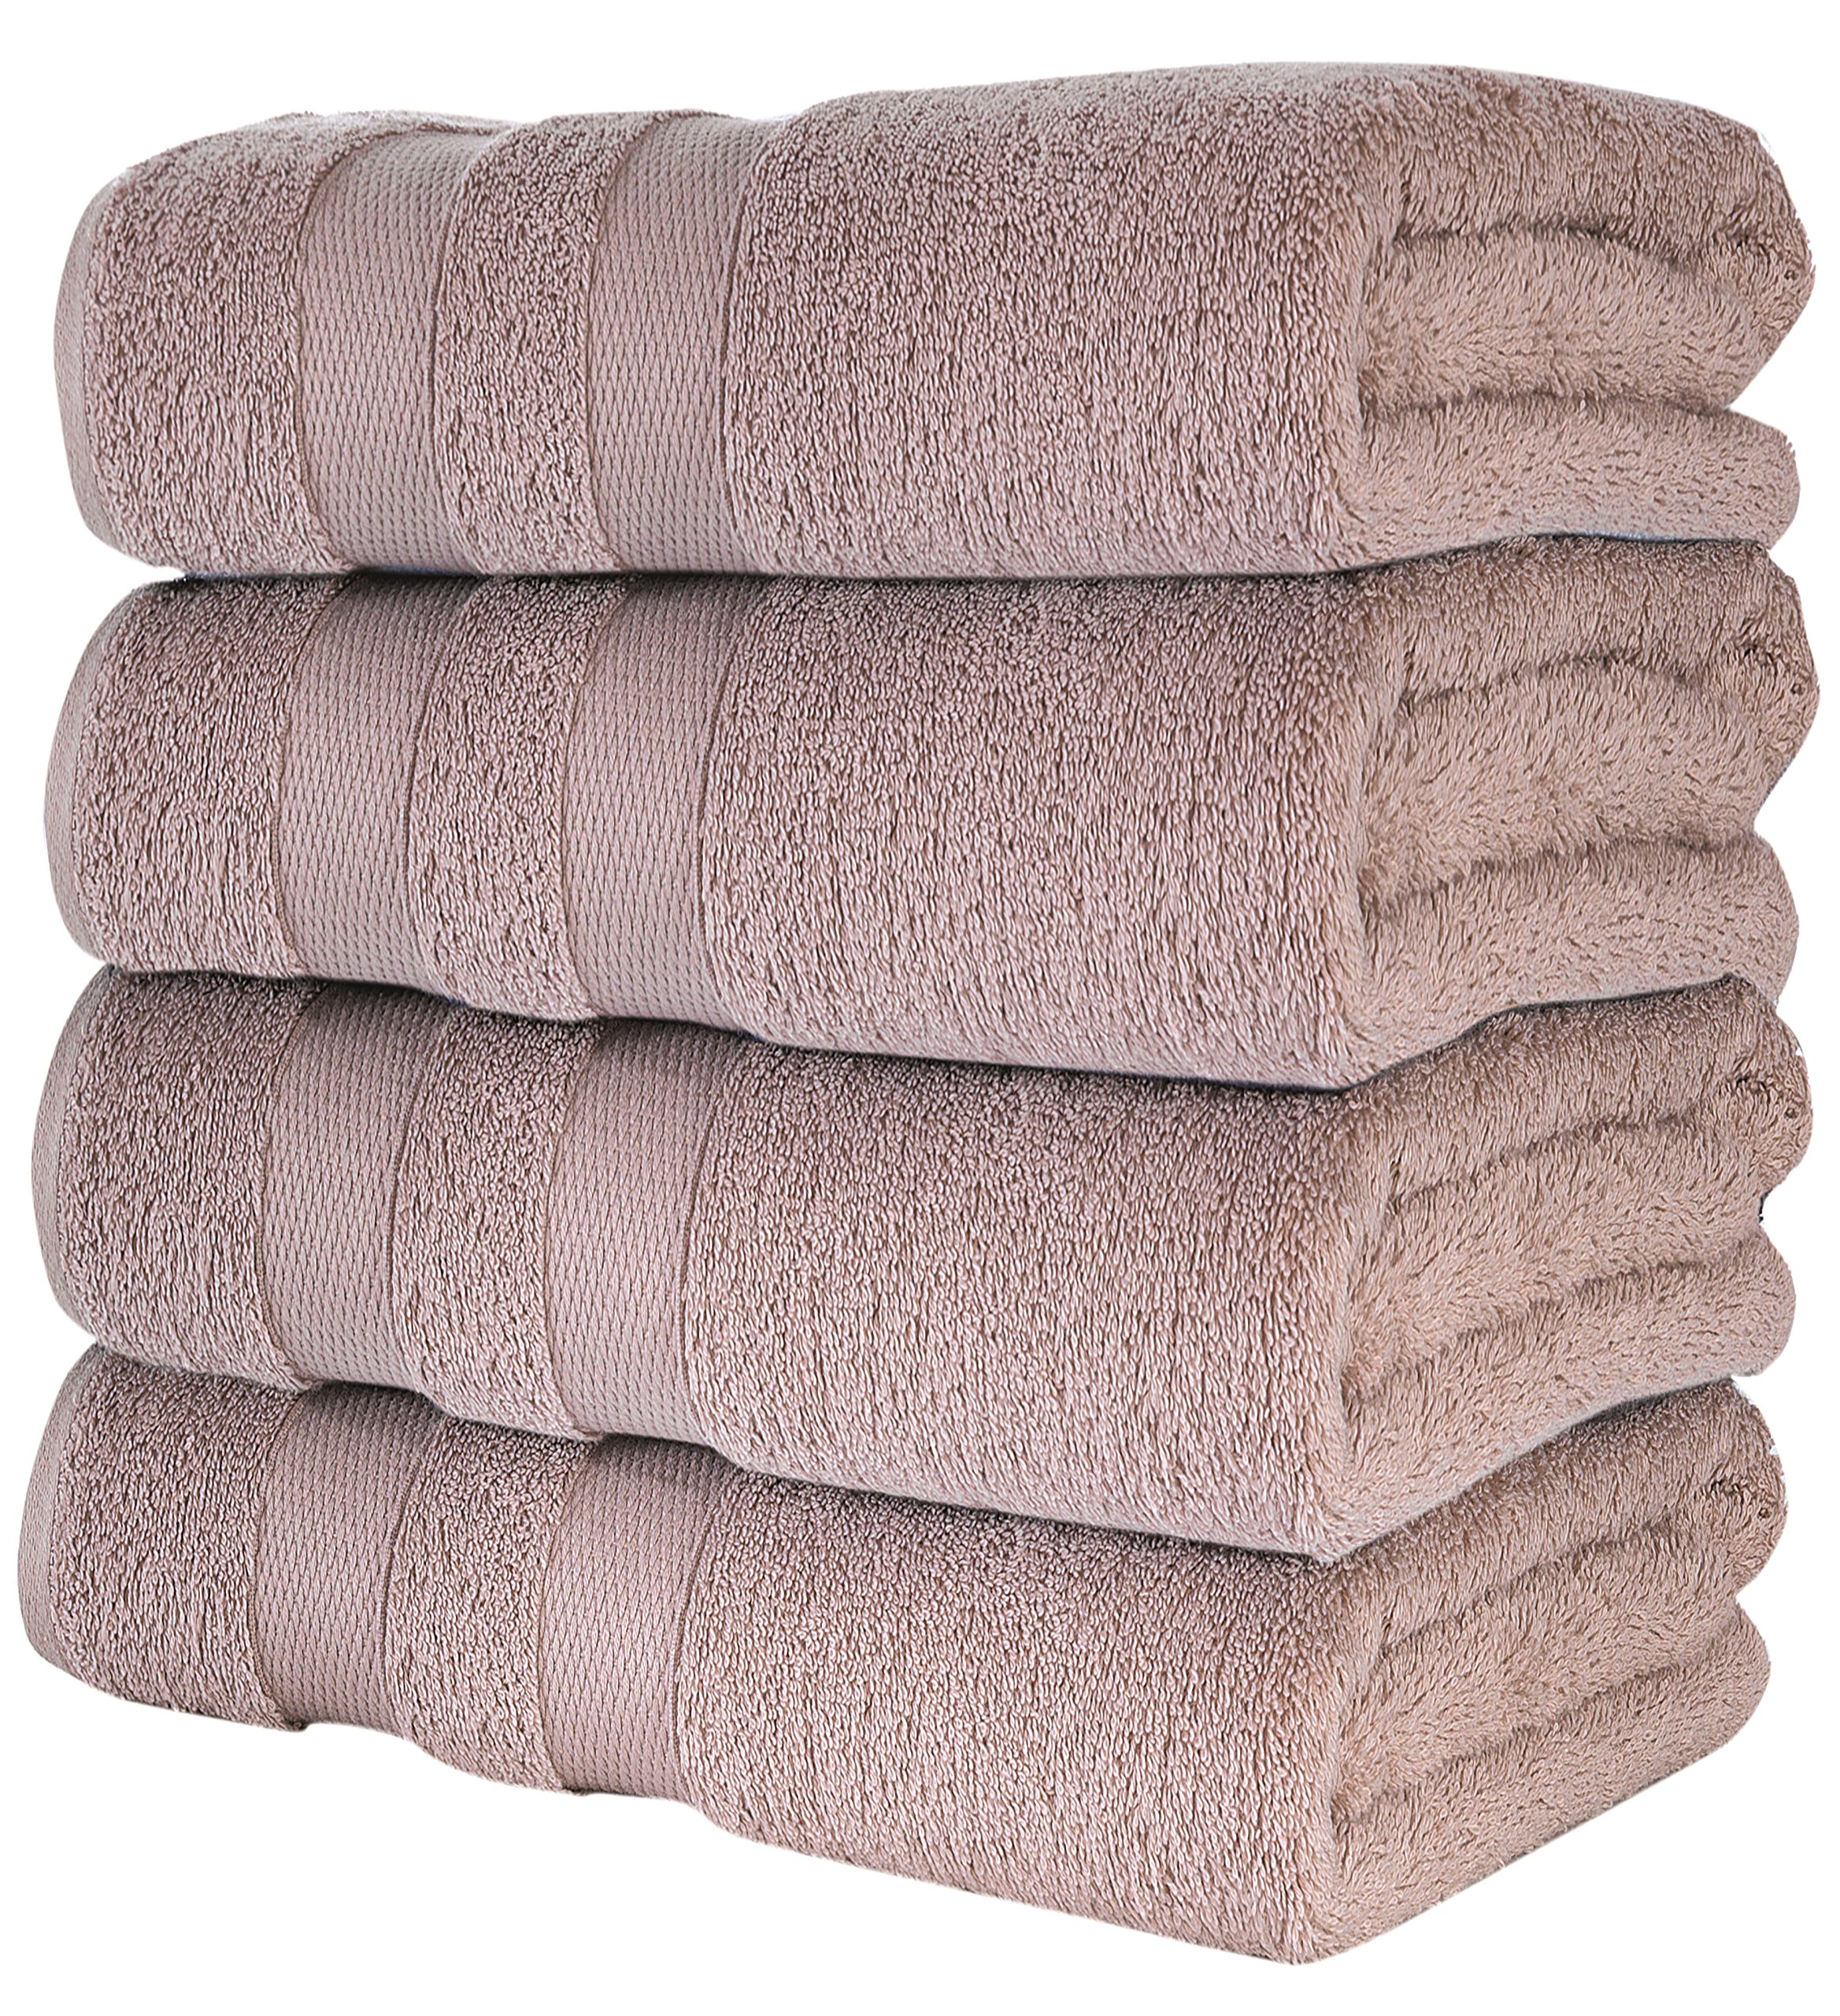 Loma Sierra Bath Towel Set- Pack of 4 - Soft Plush Quick Dry and Highly Absorbent Turkish Towels for Bathroom, Hotel and Spa -%100 Cotton Ring Spun 28x54-Dobby Borders (Linen)